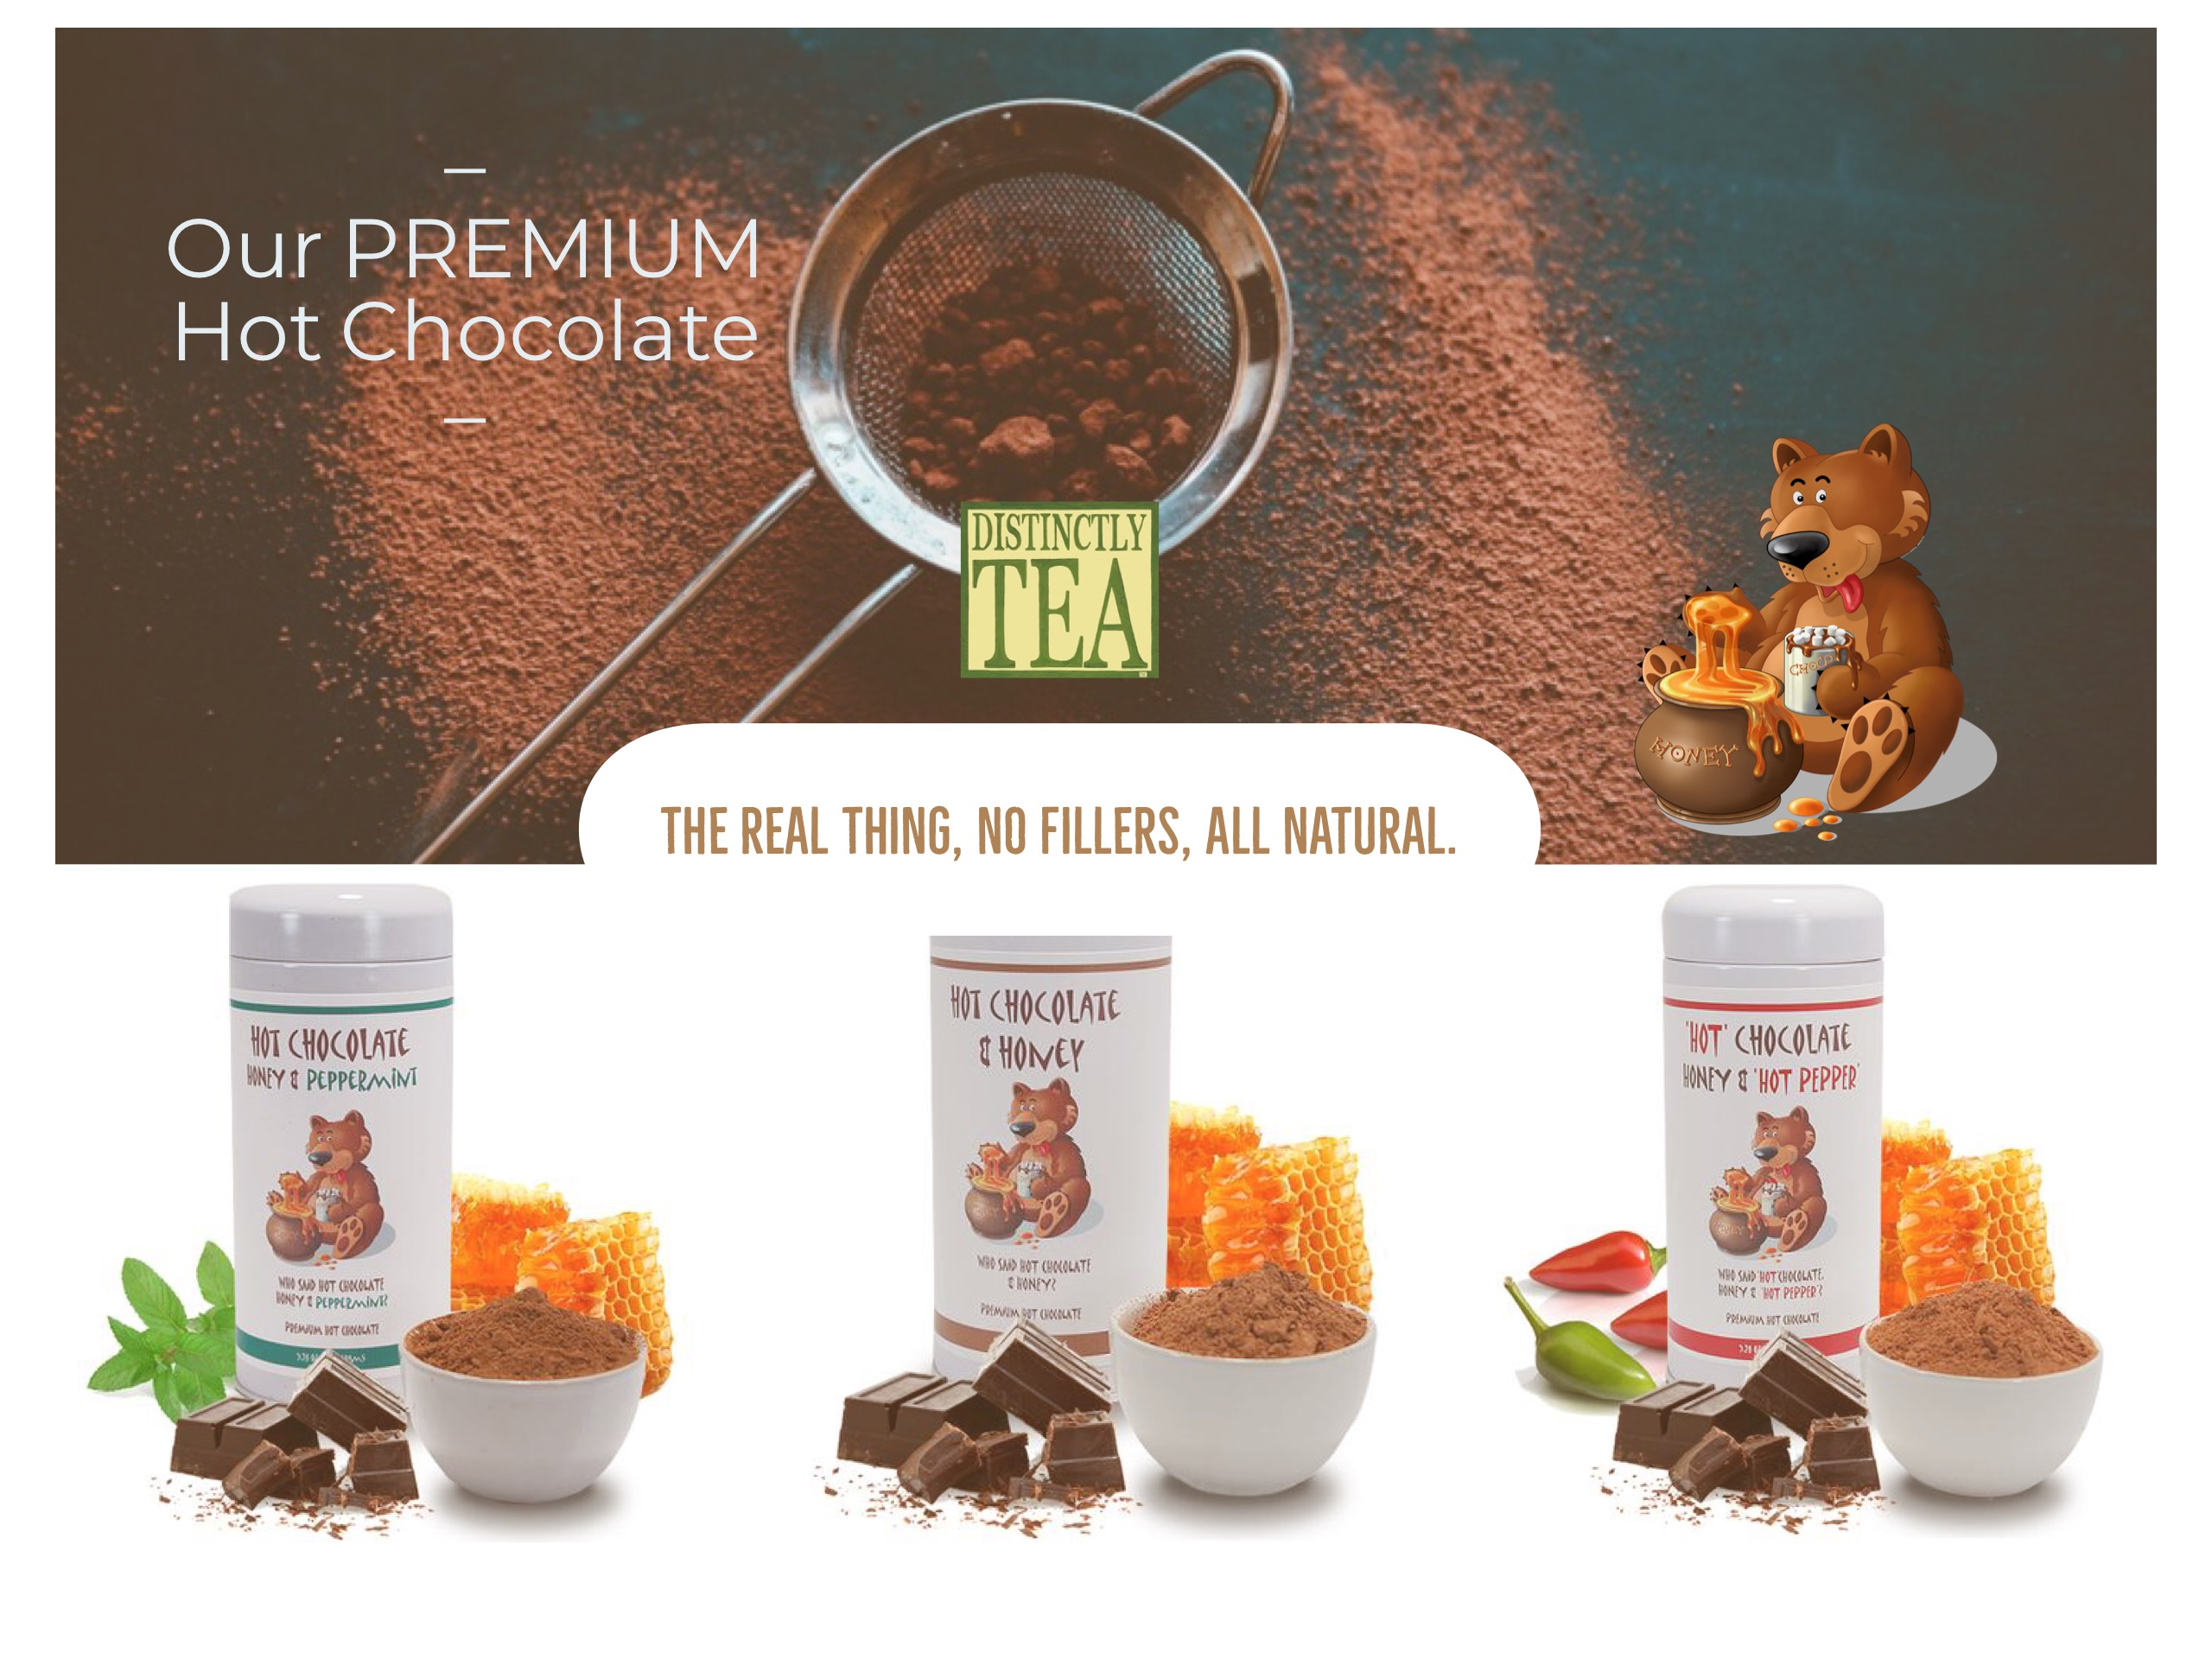 hot chocolate mix by distinctly tea.